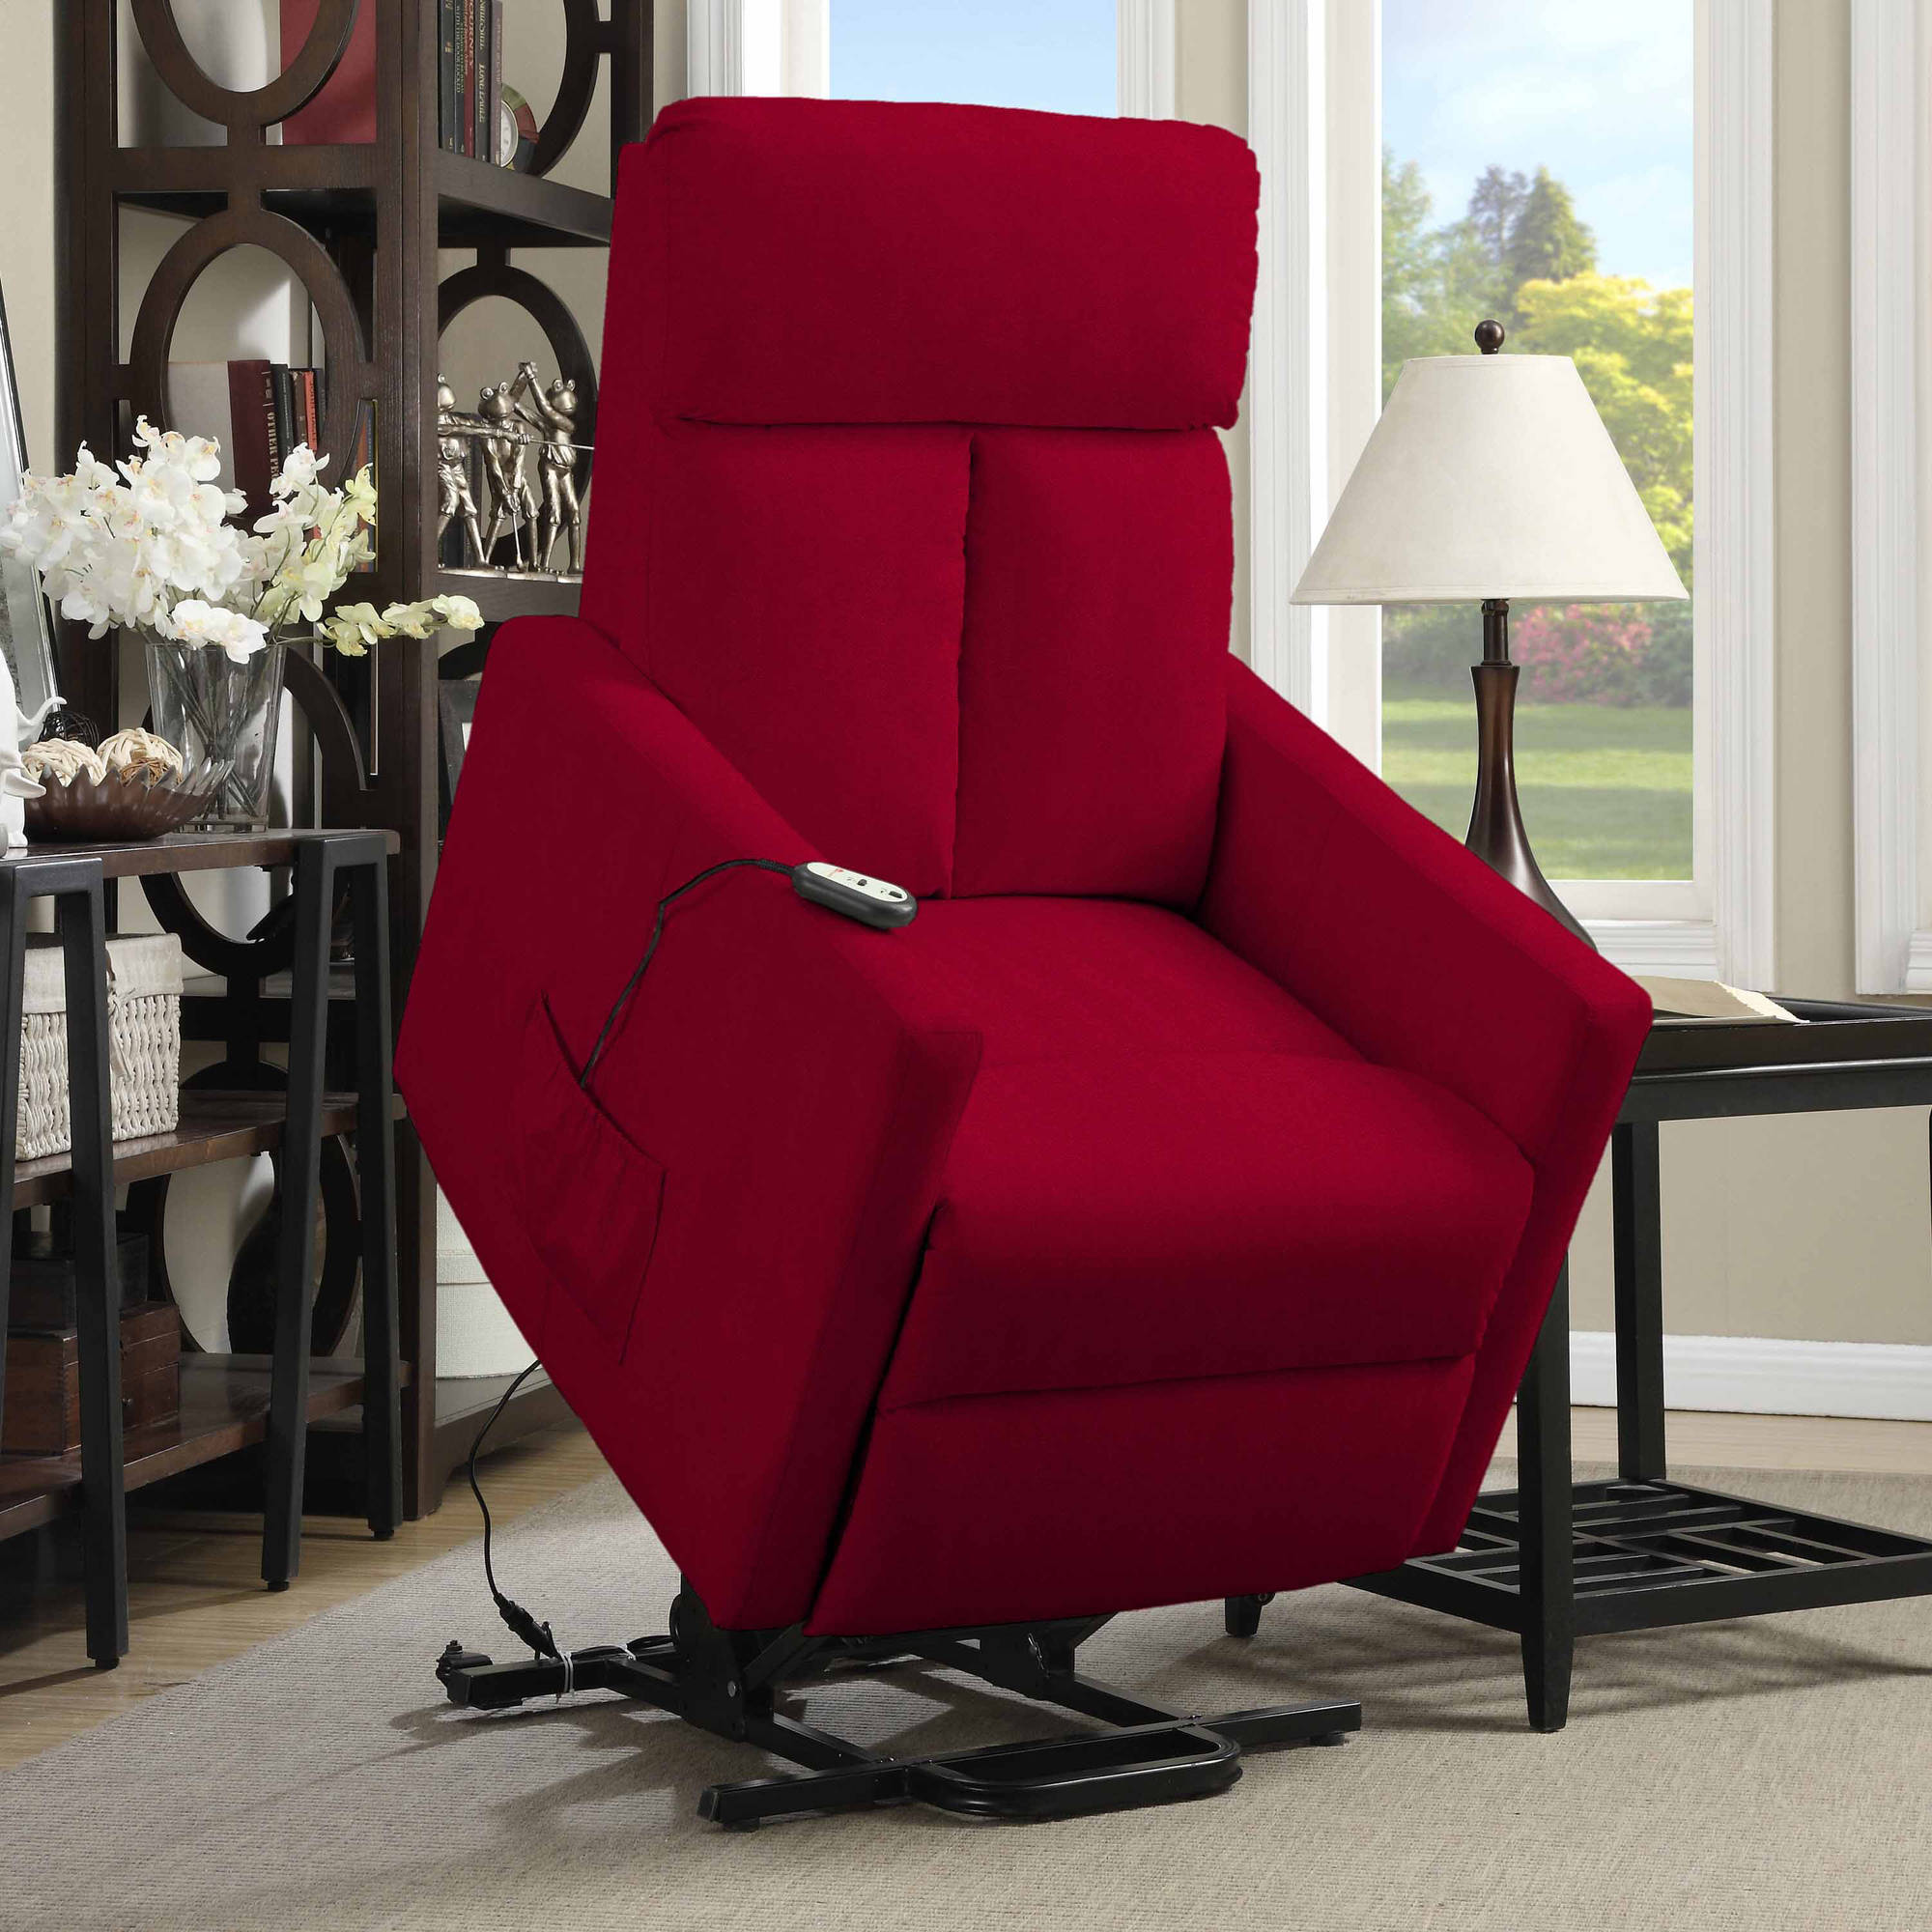 ProLounger Power Lift Chair Microfiber Recliner T-Back Multiple Colors - Walmart.com & ProLounger Power Lift Chair Microfiber Recliner T-Back Multiple ... islam-shia.org